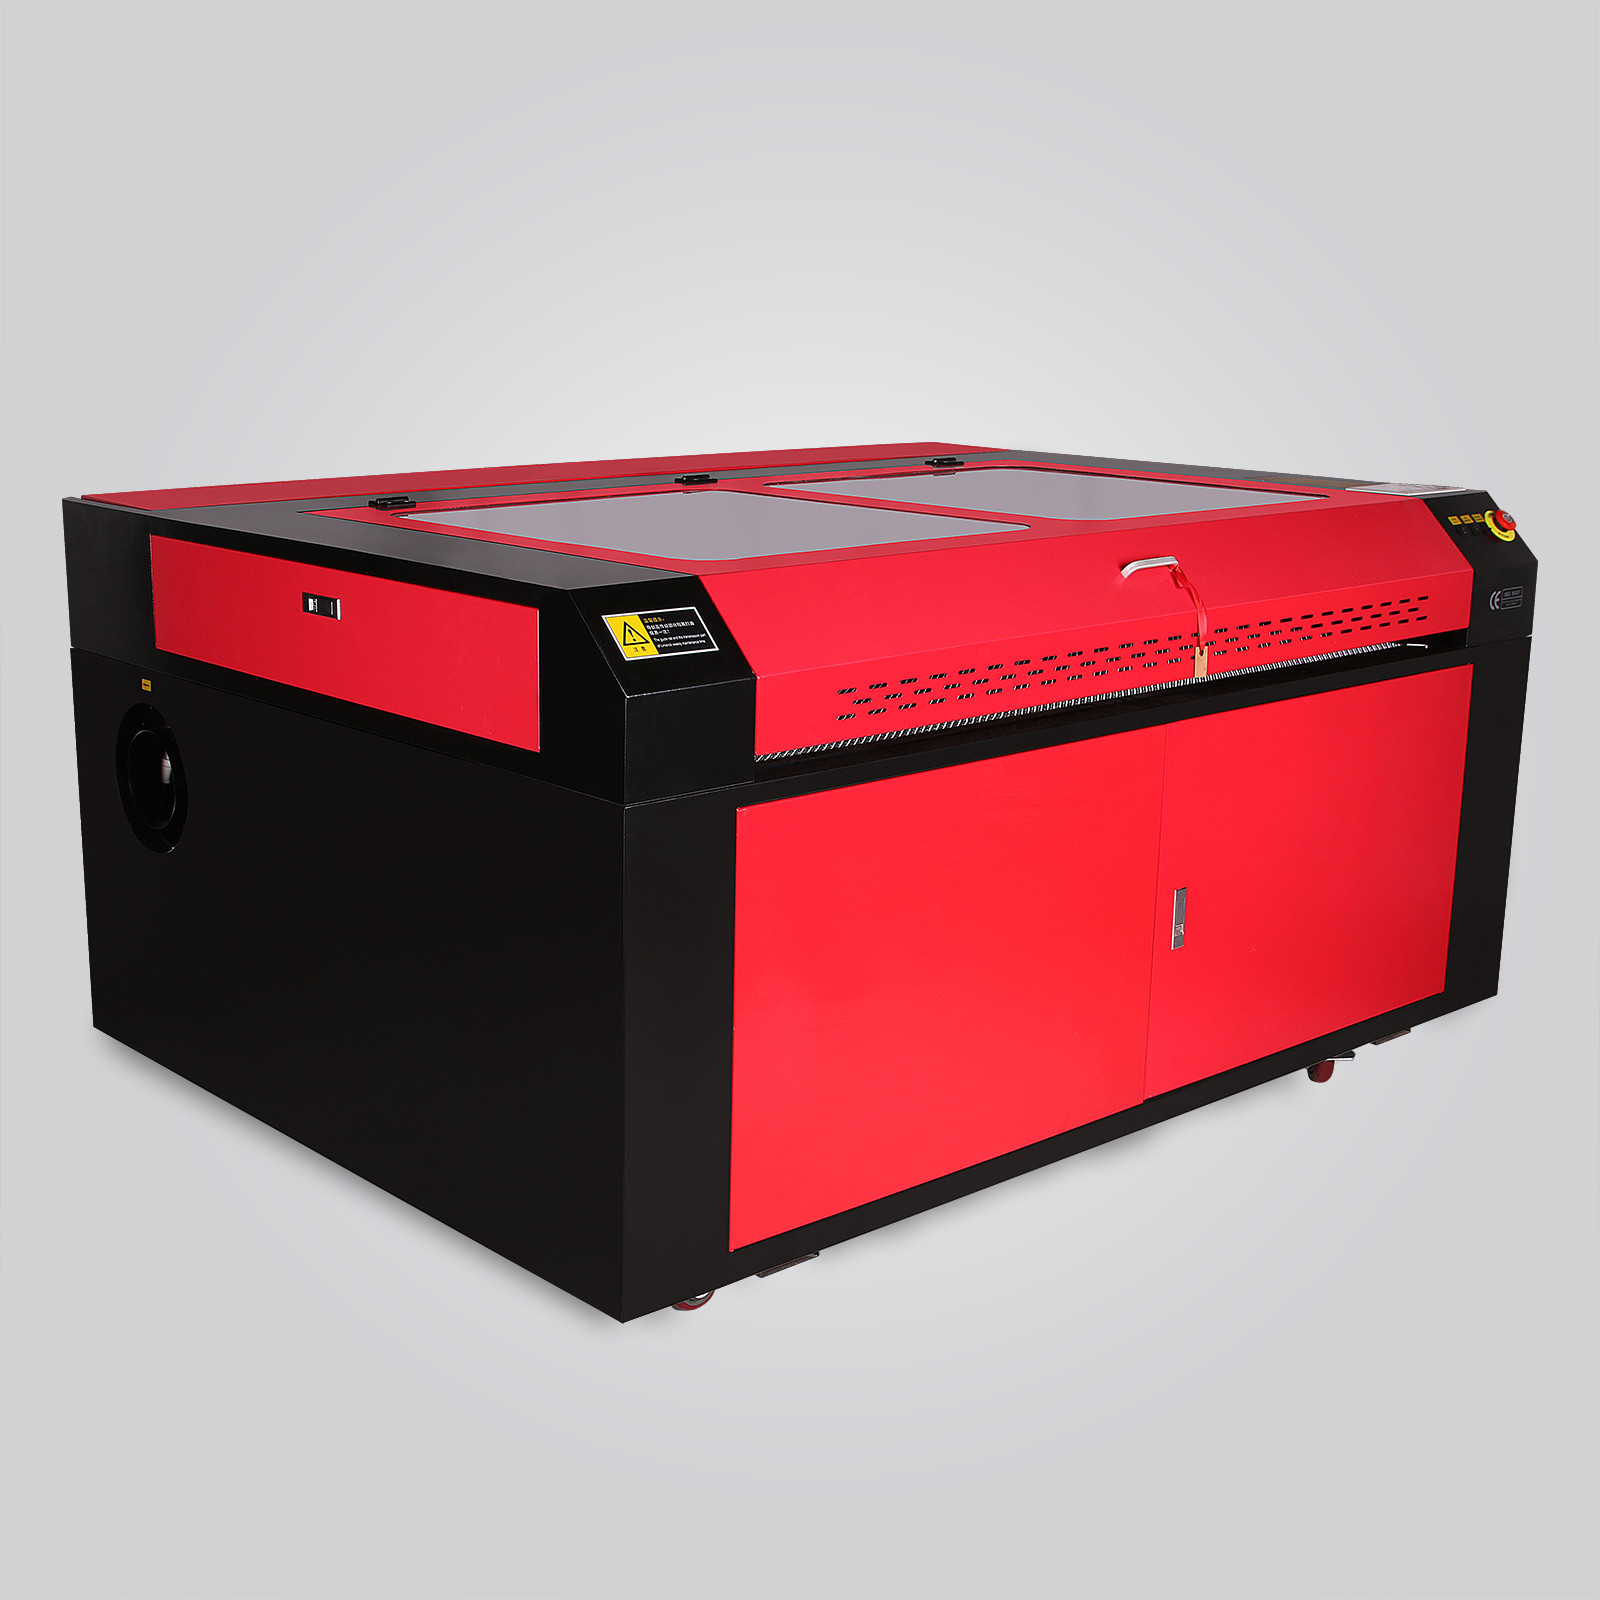 CO2-Usb-Laser-Engraving-Cutting-Machine-Engraver-Cutter-Air-Assist-Carving thumbnail 74